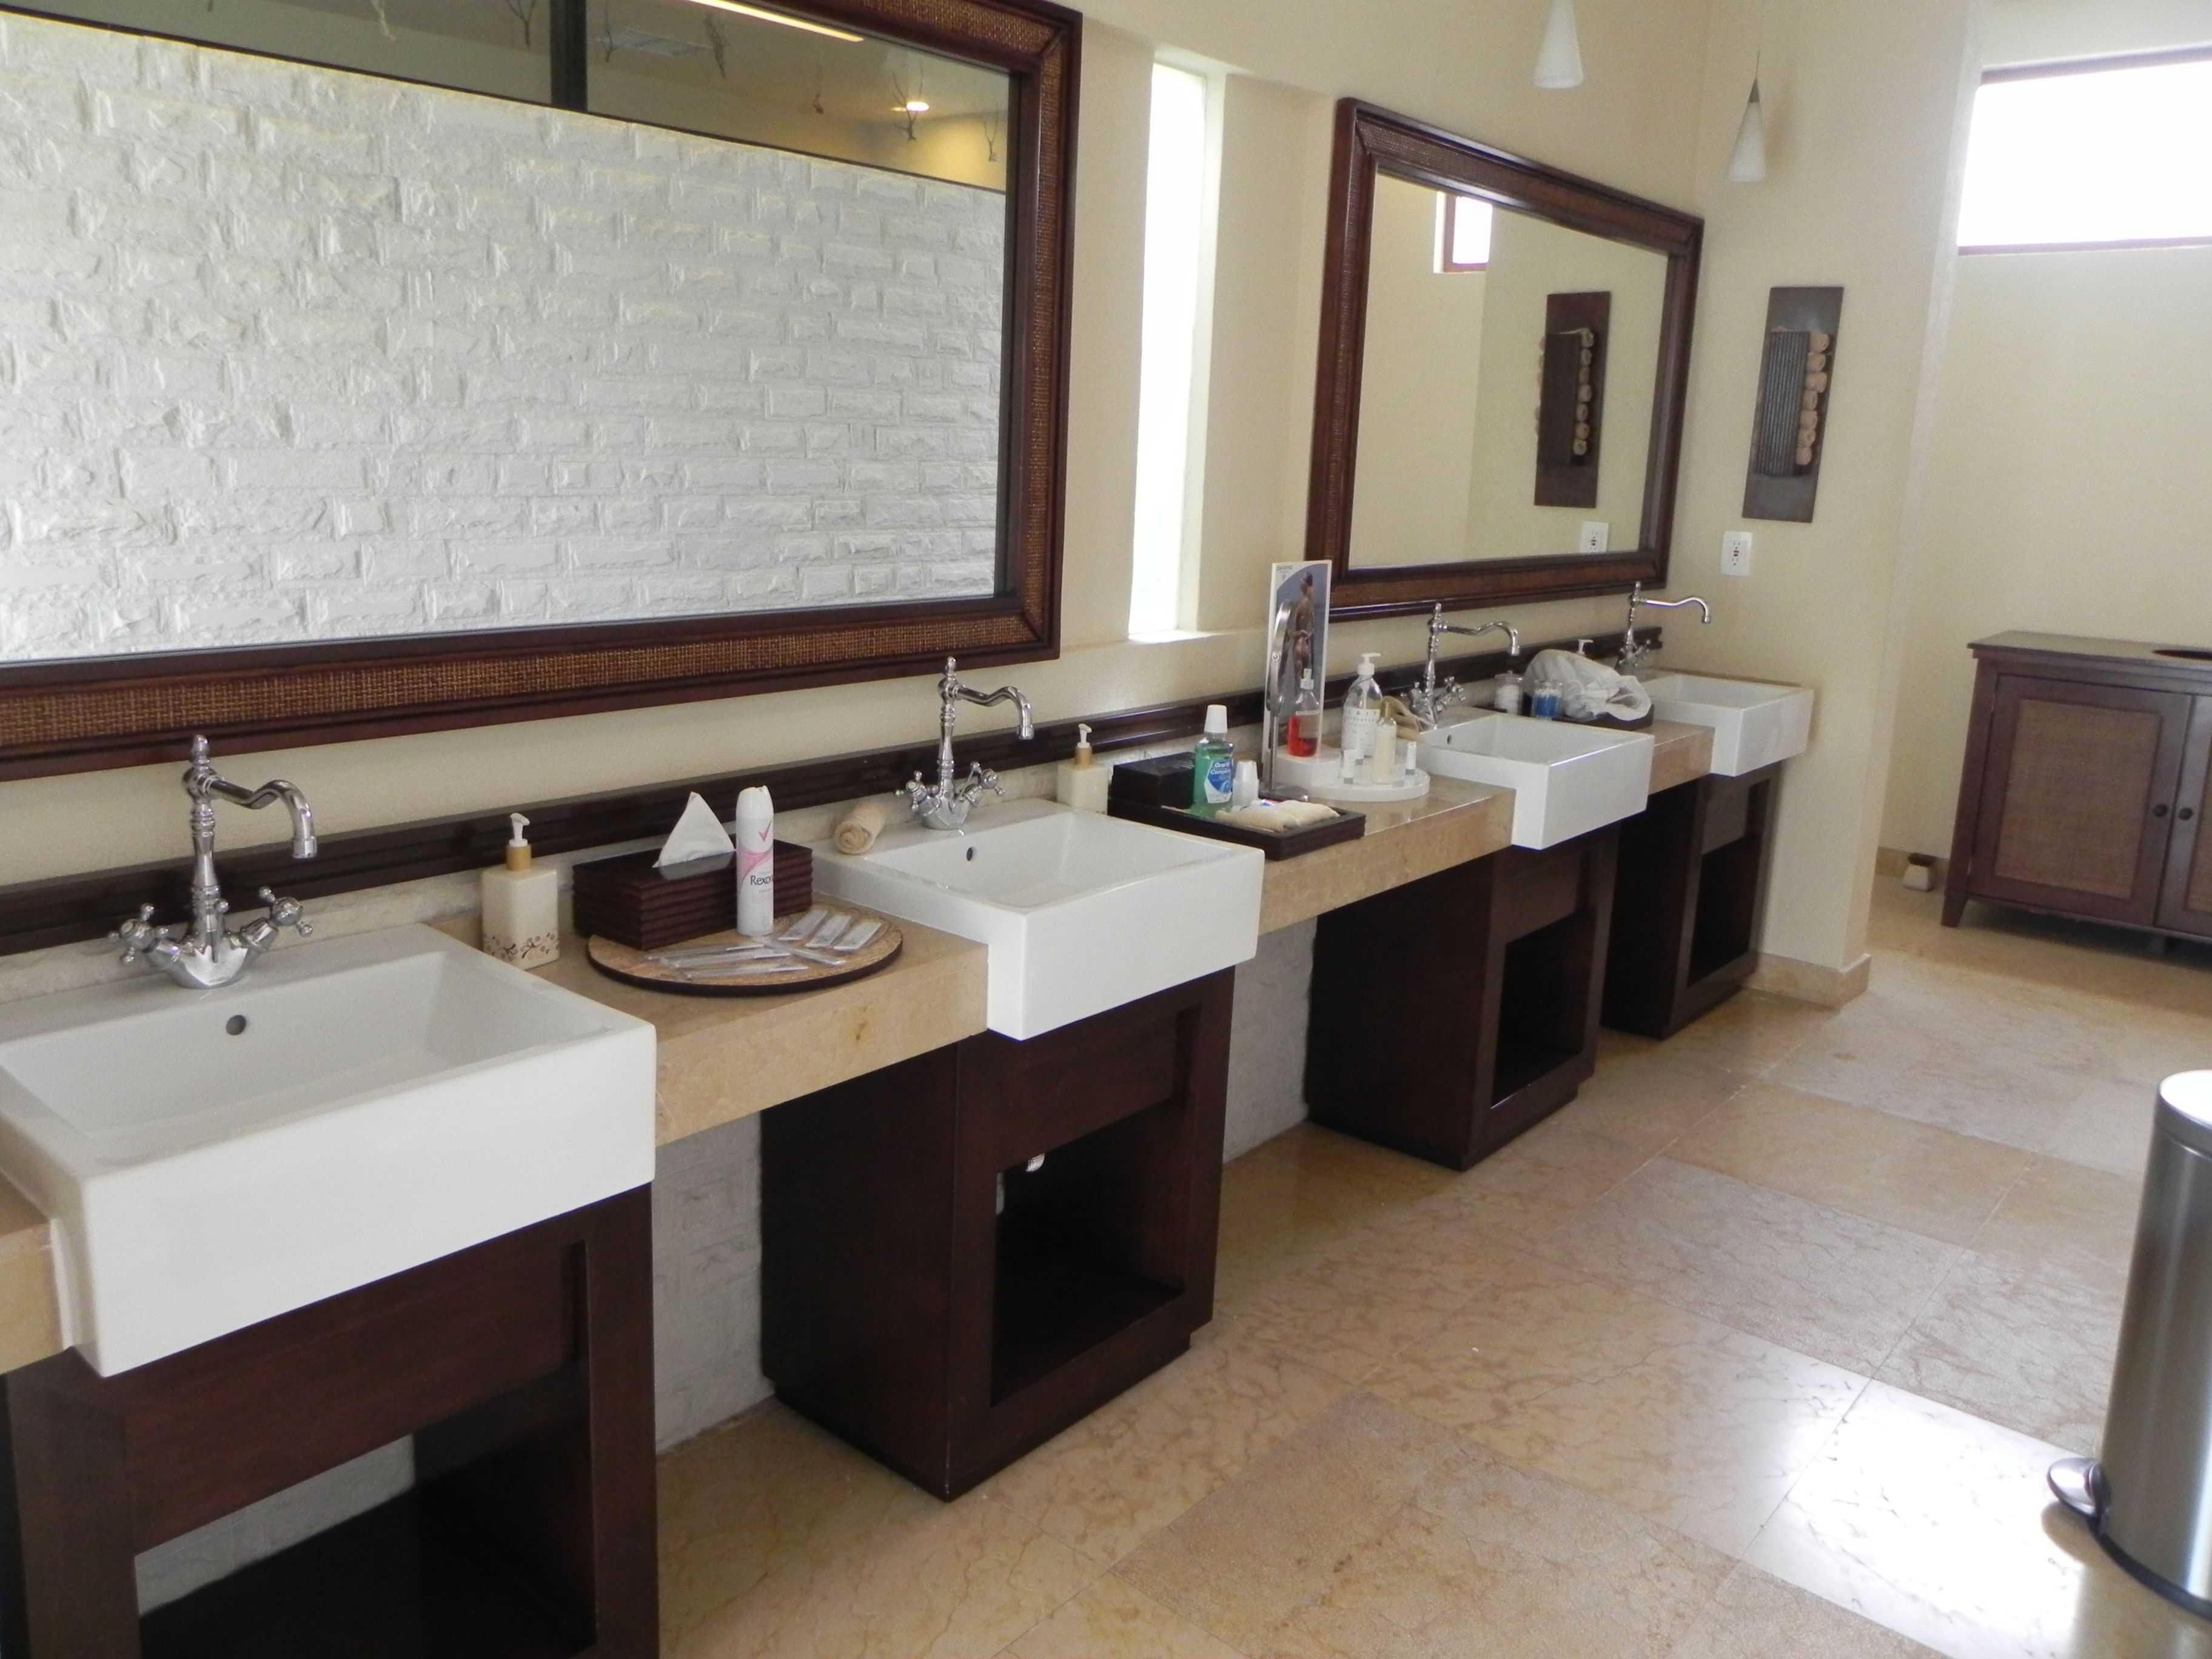 commercial bathroom sink. Fully Stocked #vanities For Commercial Bathroom Sink